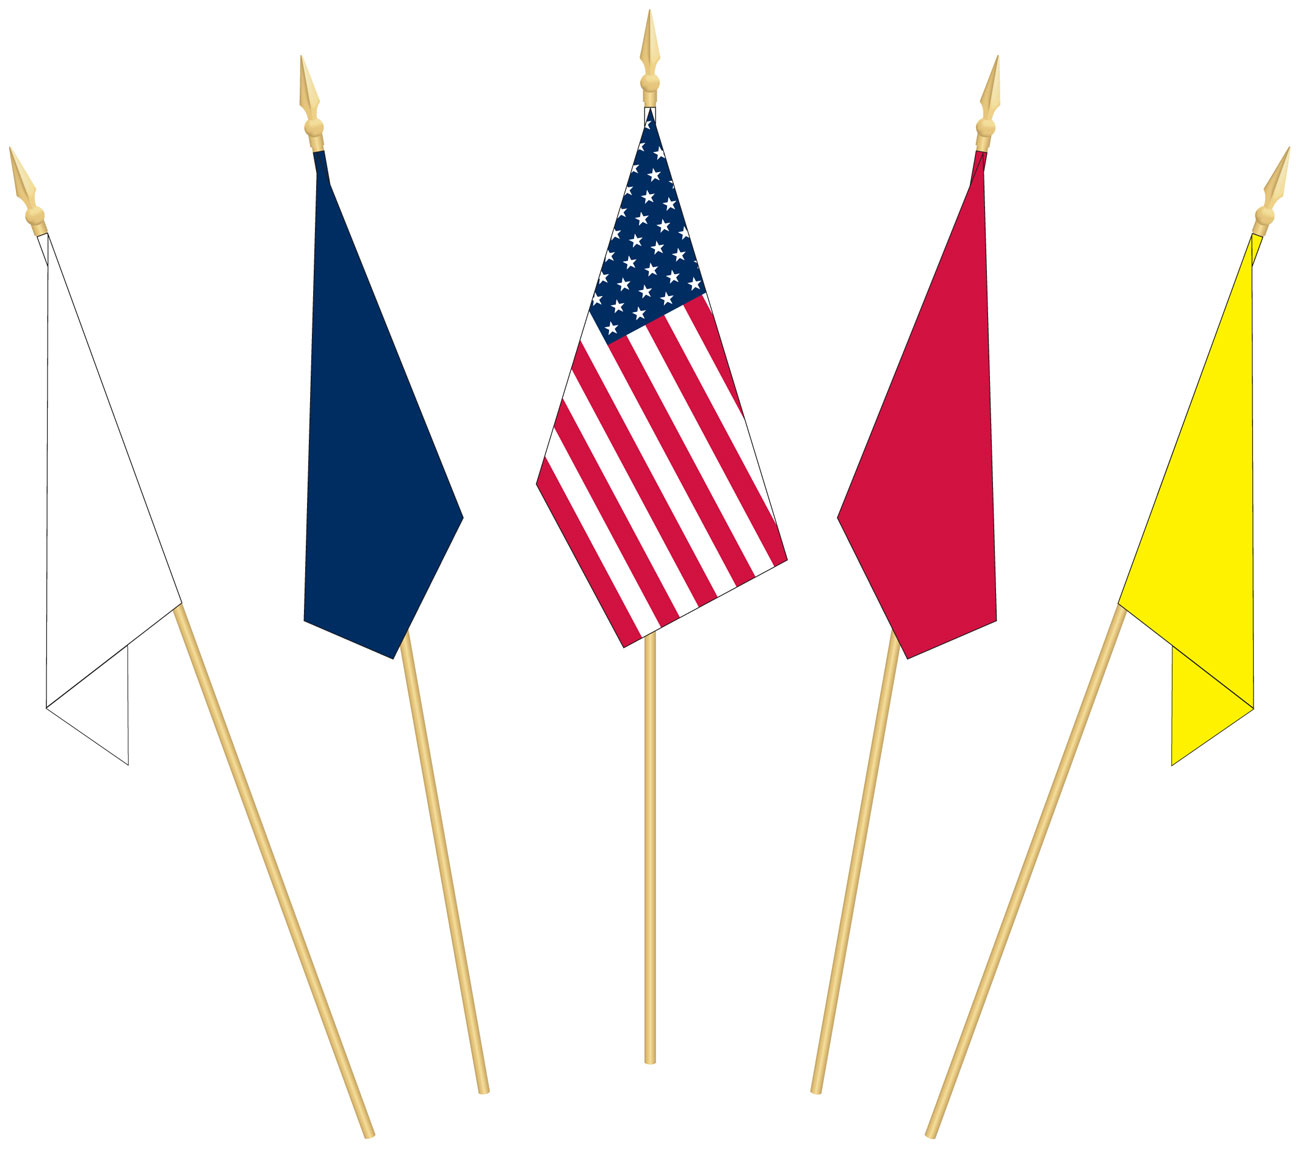 flag-facts-group-of-flags.jpg